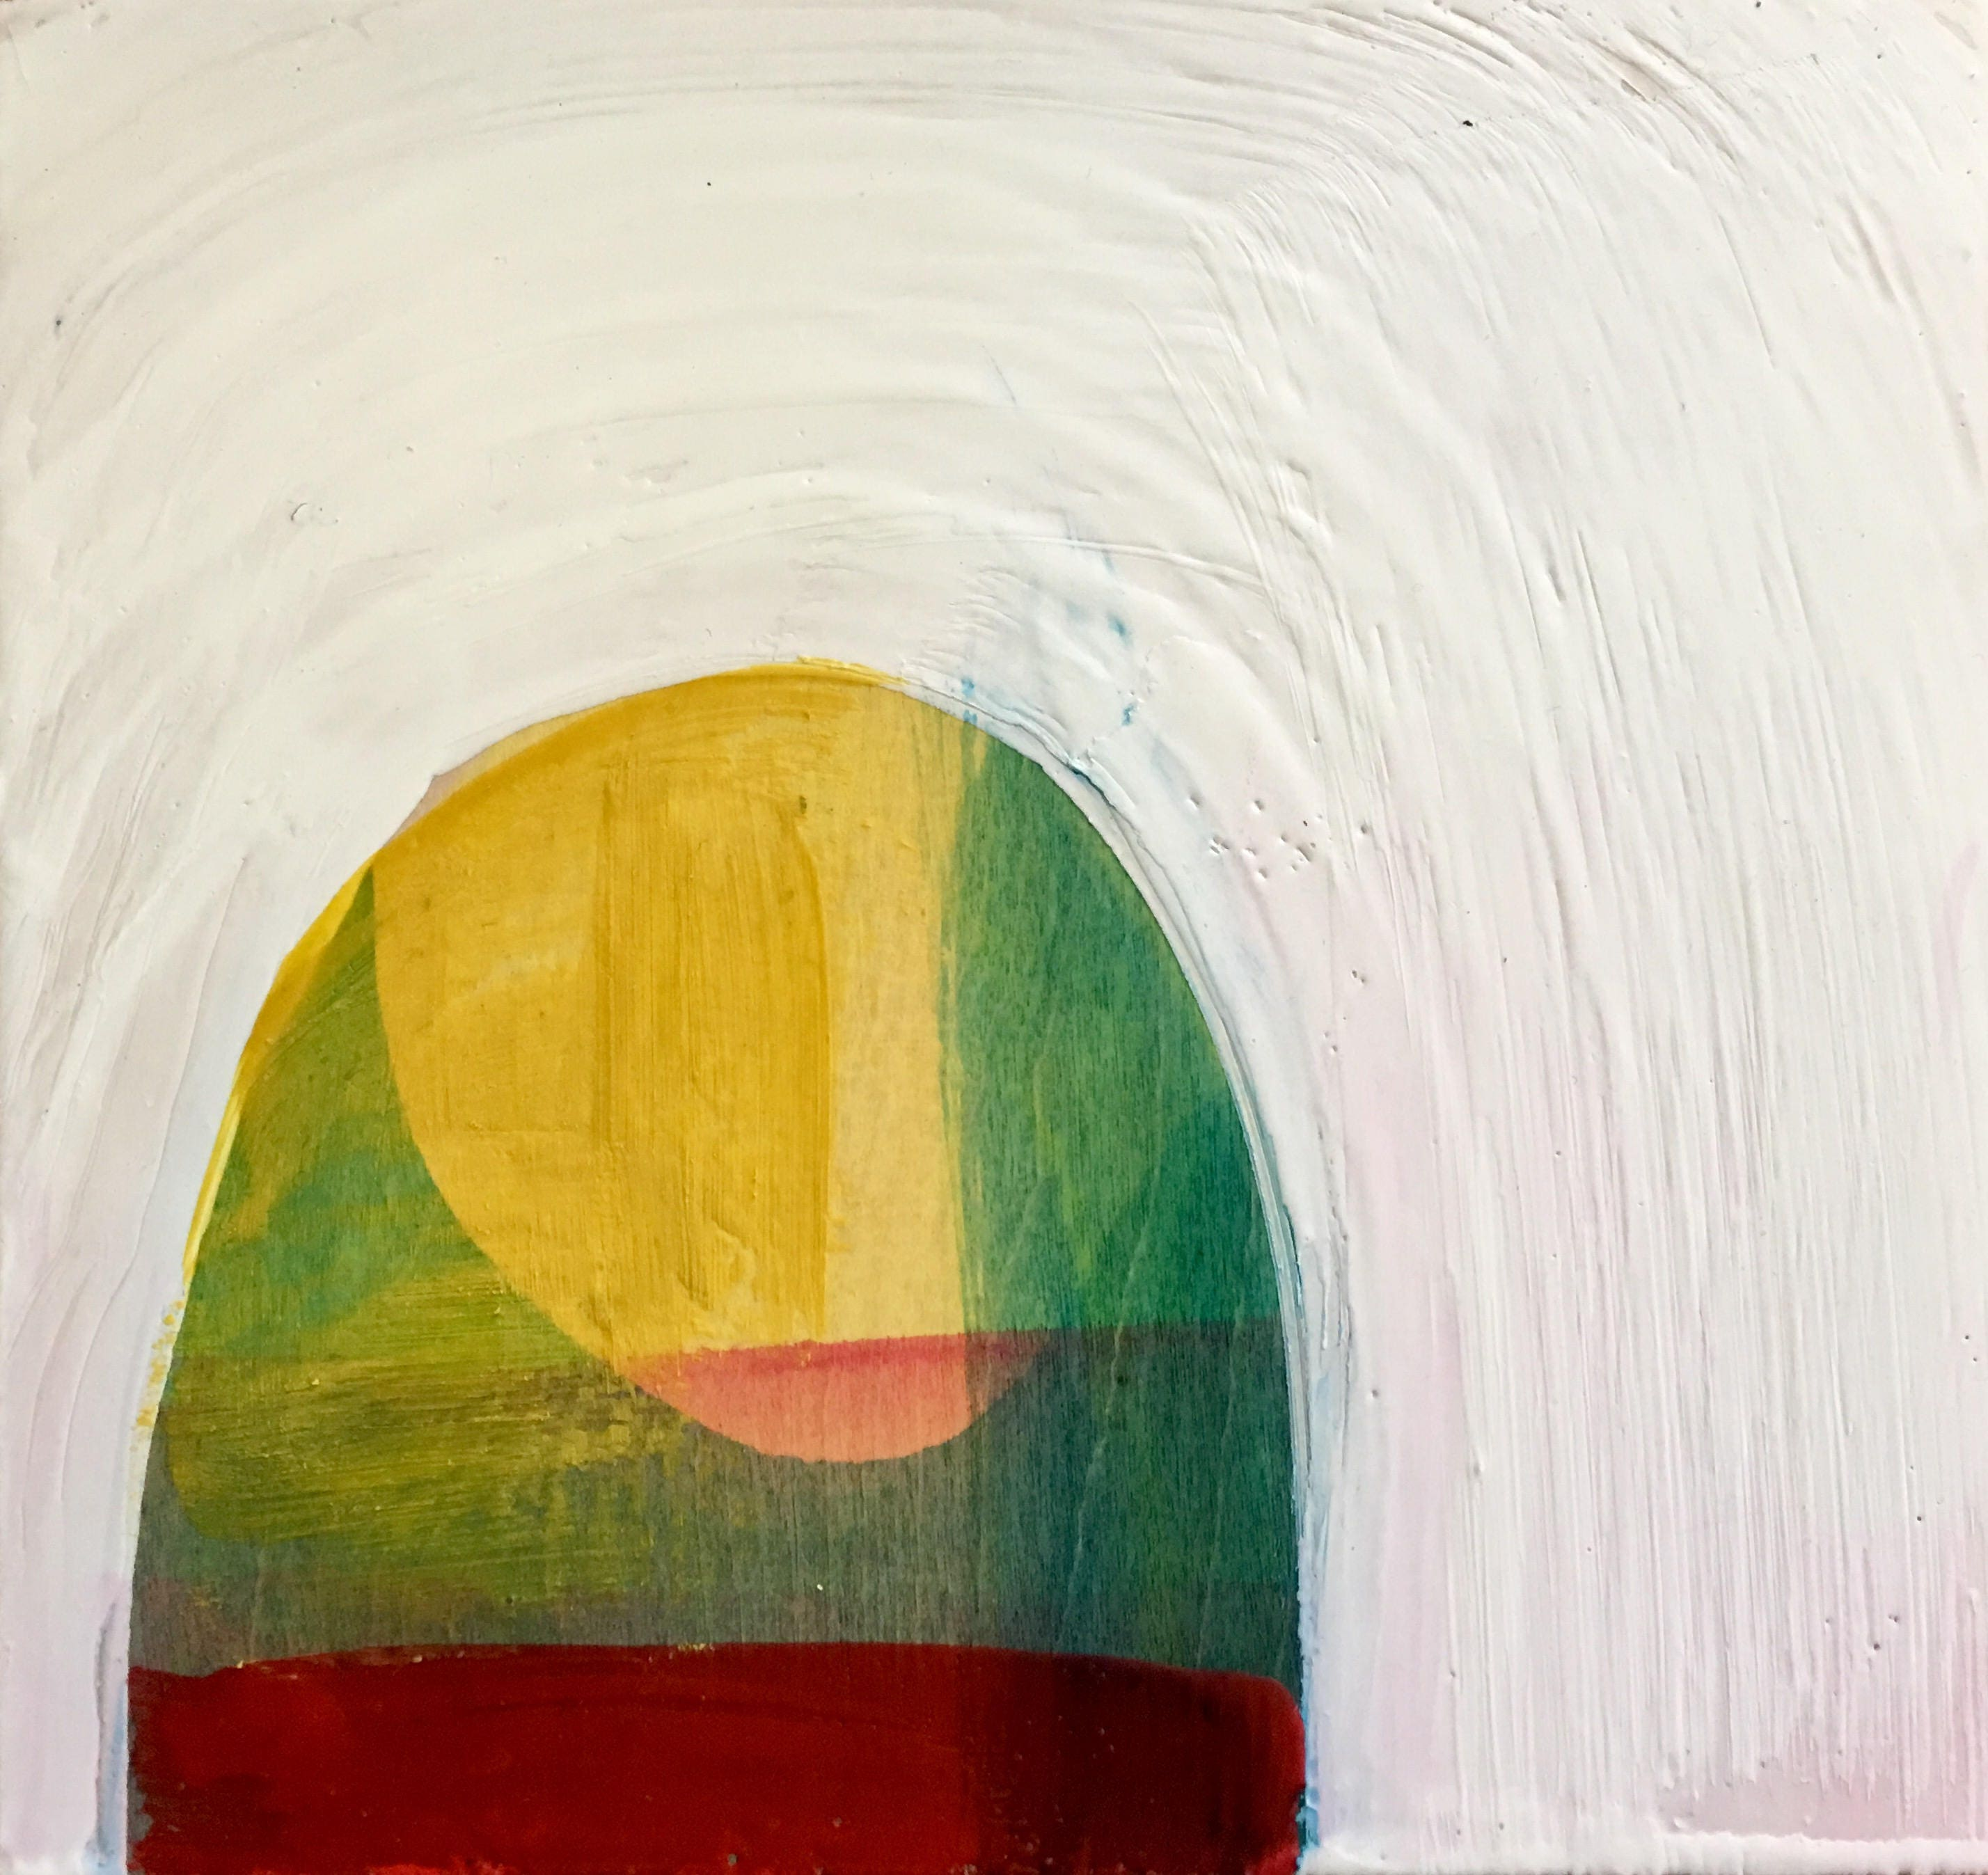 If Light At End Of Tunnel Is Green You >> Begining To See The Light 8 X8 Encaustic Painting